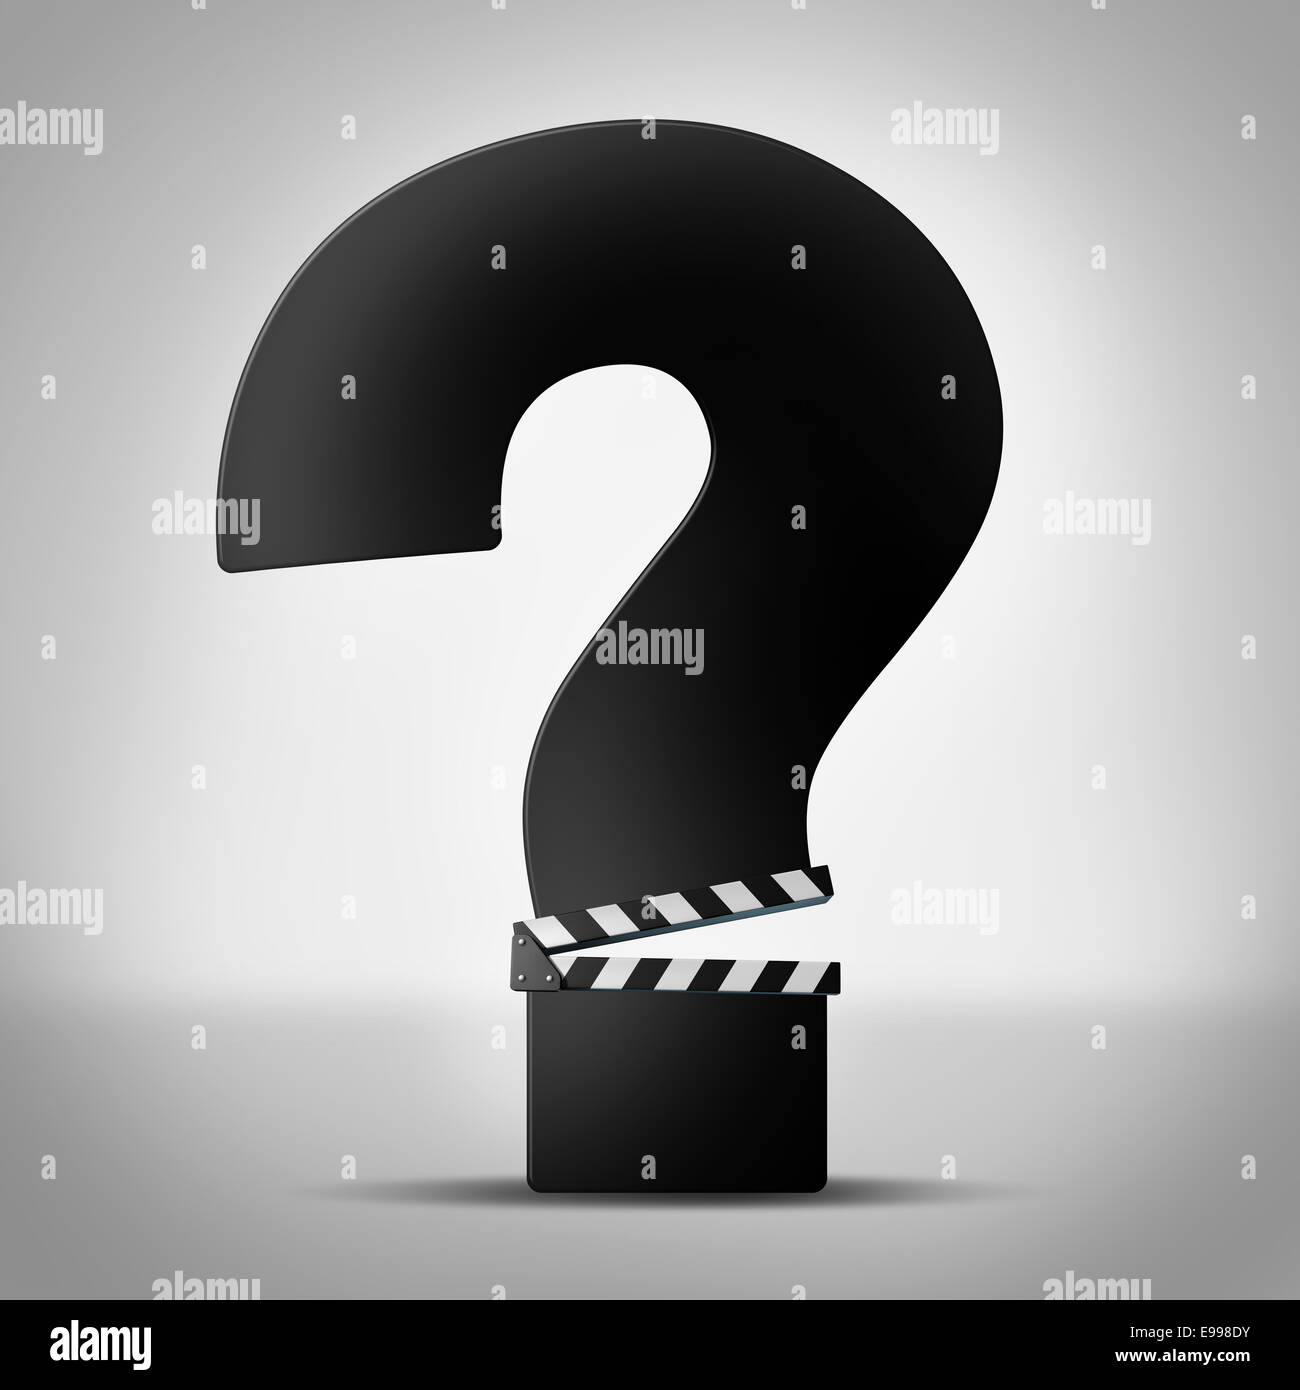 Movies questions show business information as a clapboard or movies questions show business information as a clapboard or clapper board shaped as a question mark as a symbol for movie reviews or ratings information or biocorpaavc